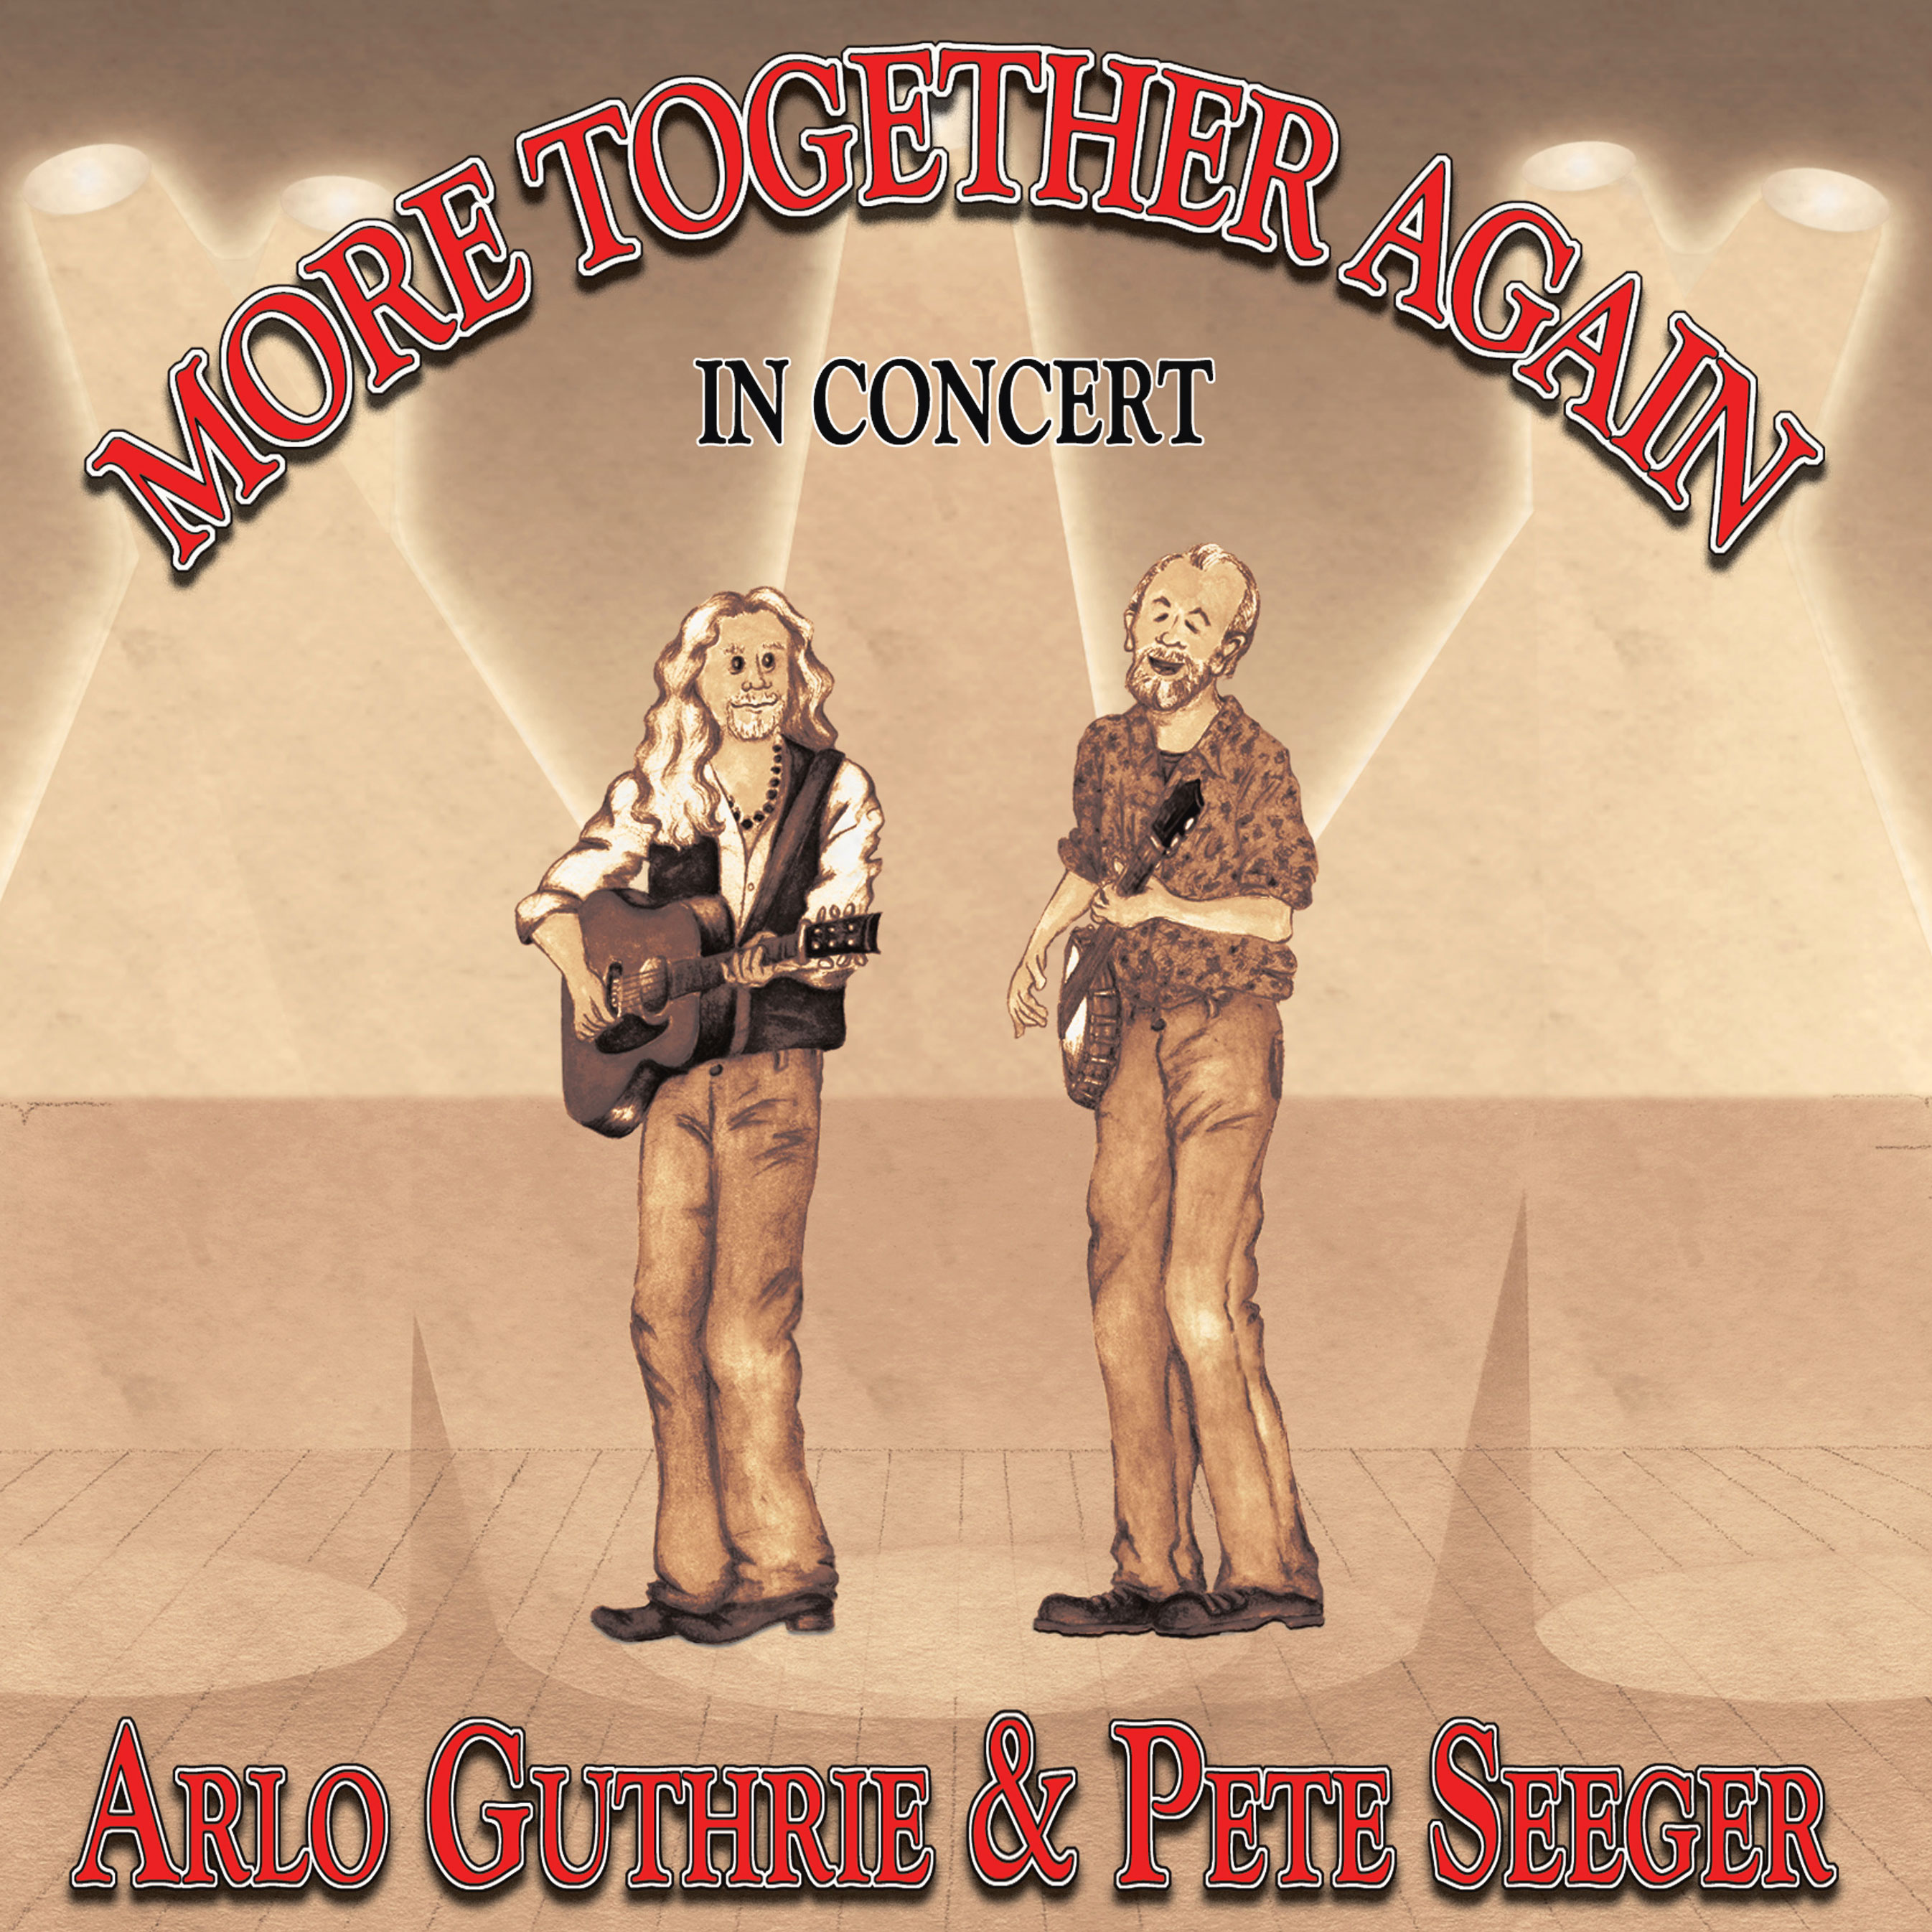 Arlo & Pete's More Together Again is now available for digital download!